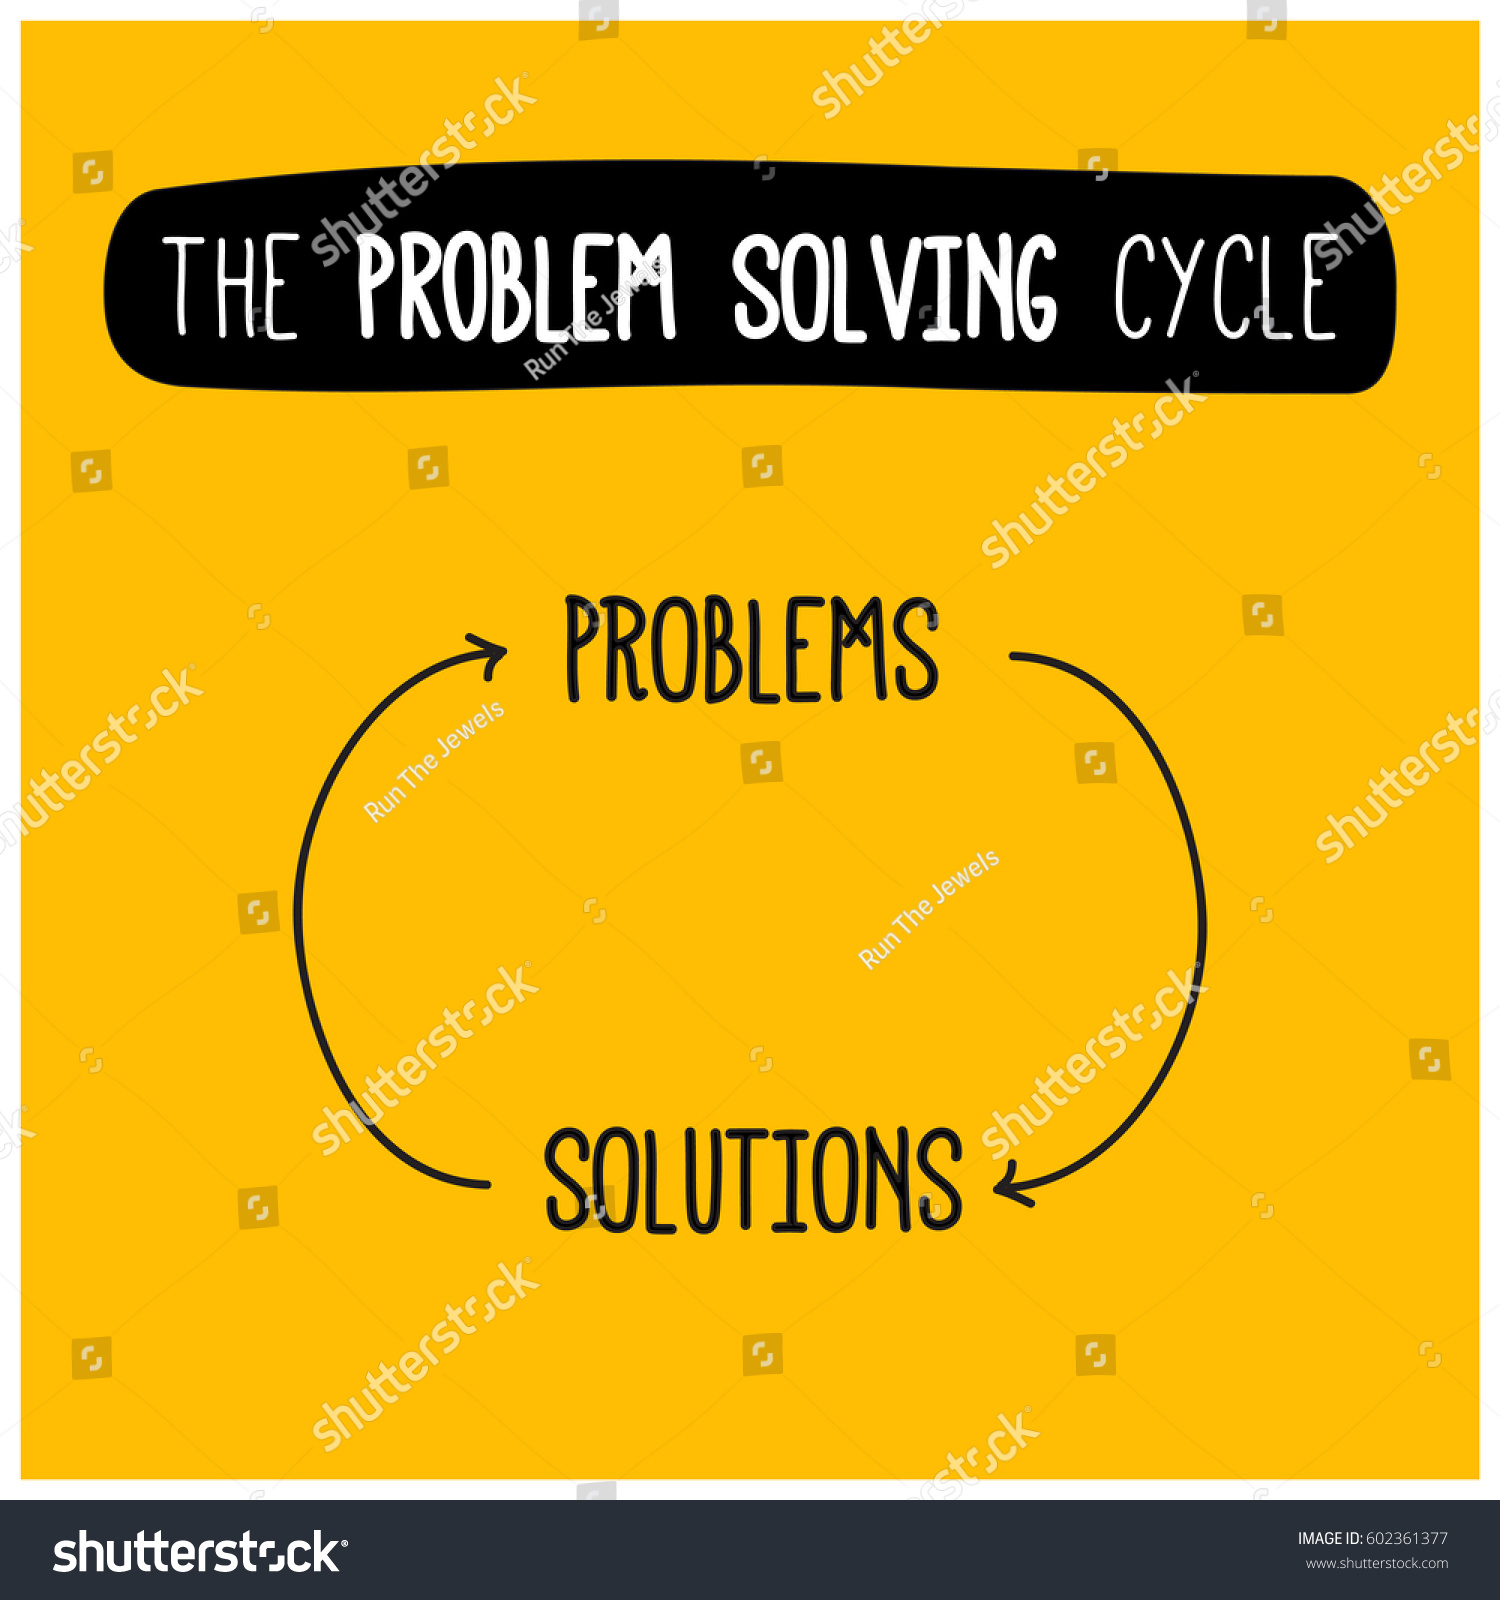 Problem Solving Solutions Neverending Funny Cycle Stock